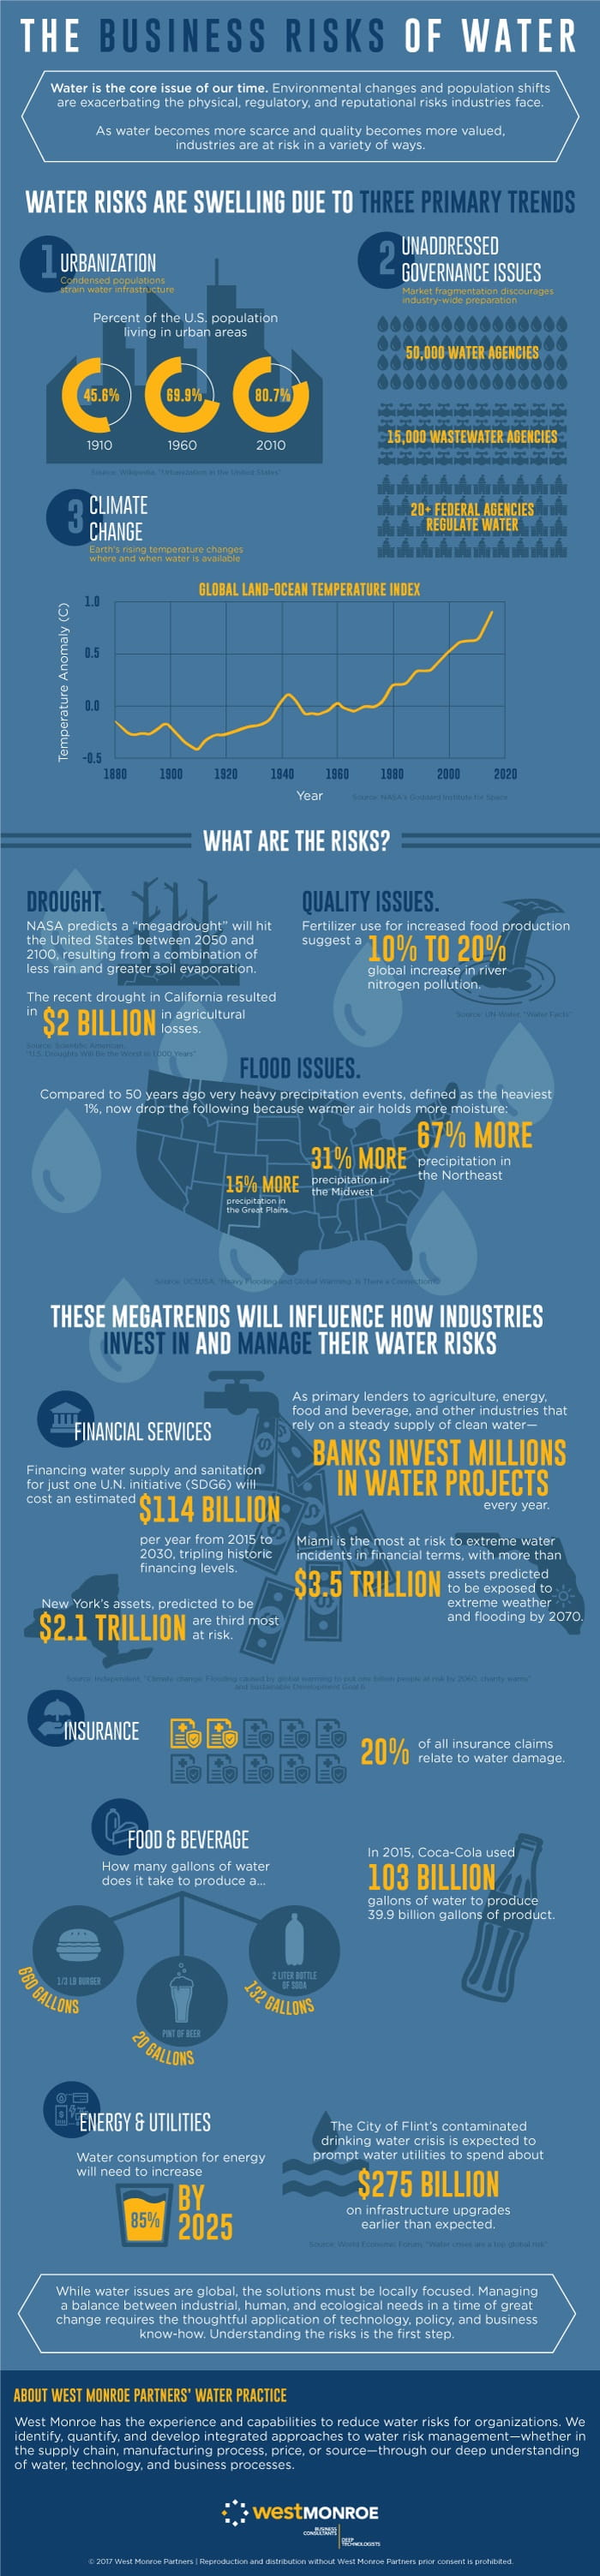 The business risks of water infographic